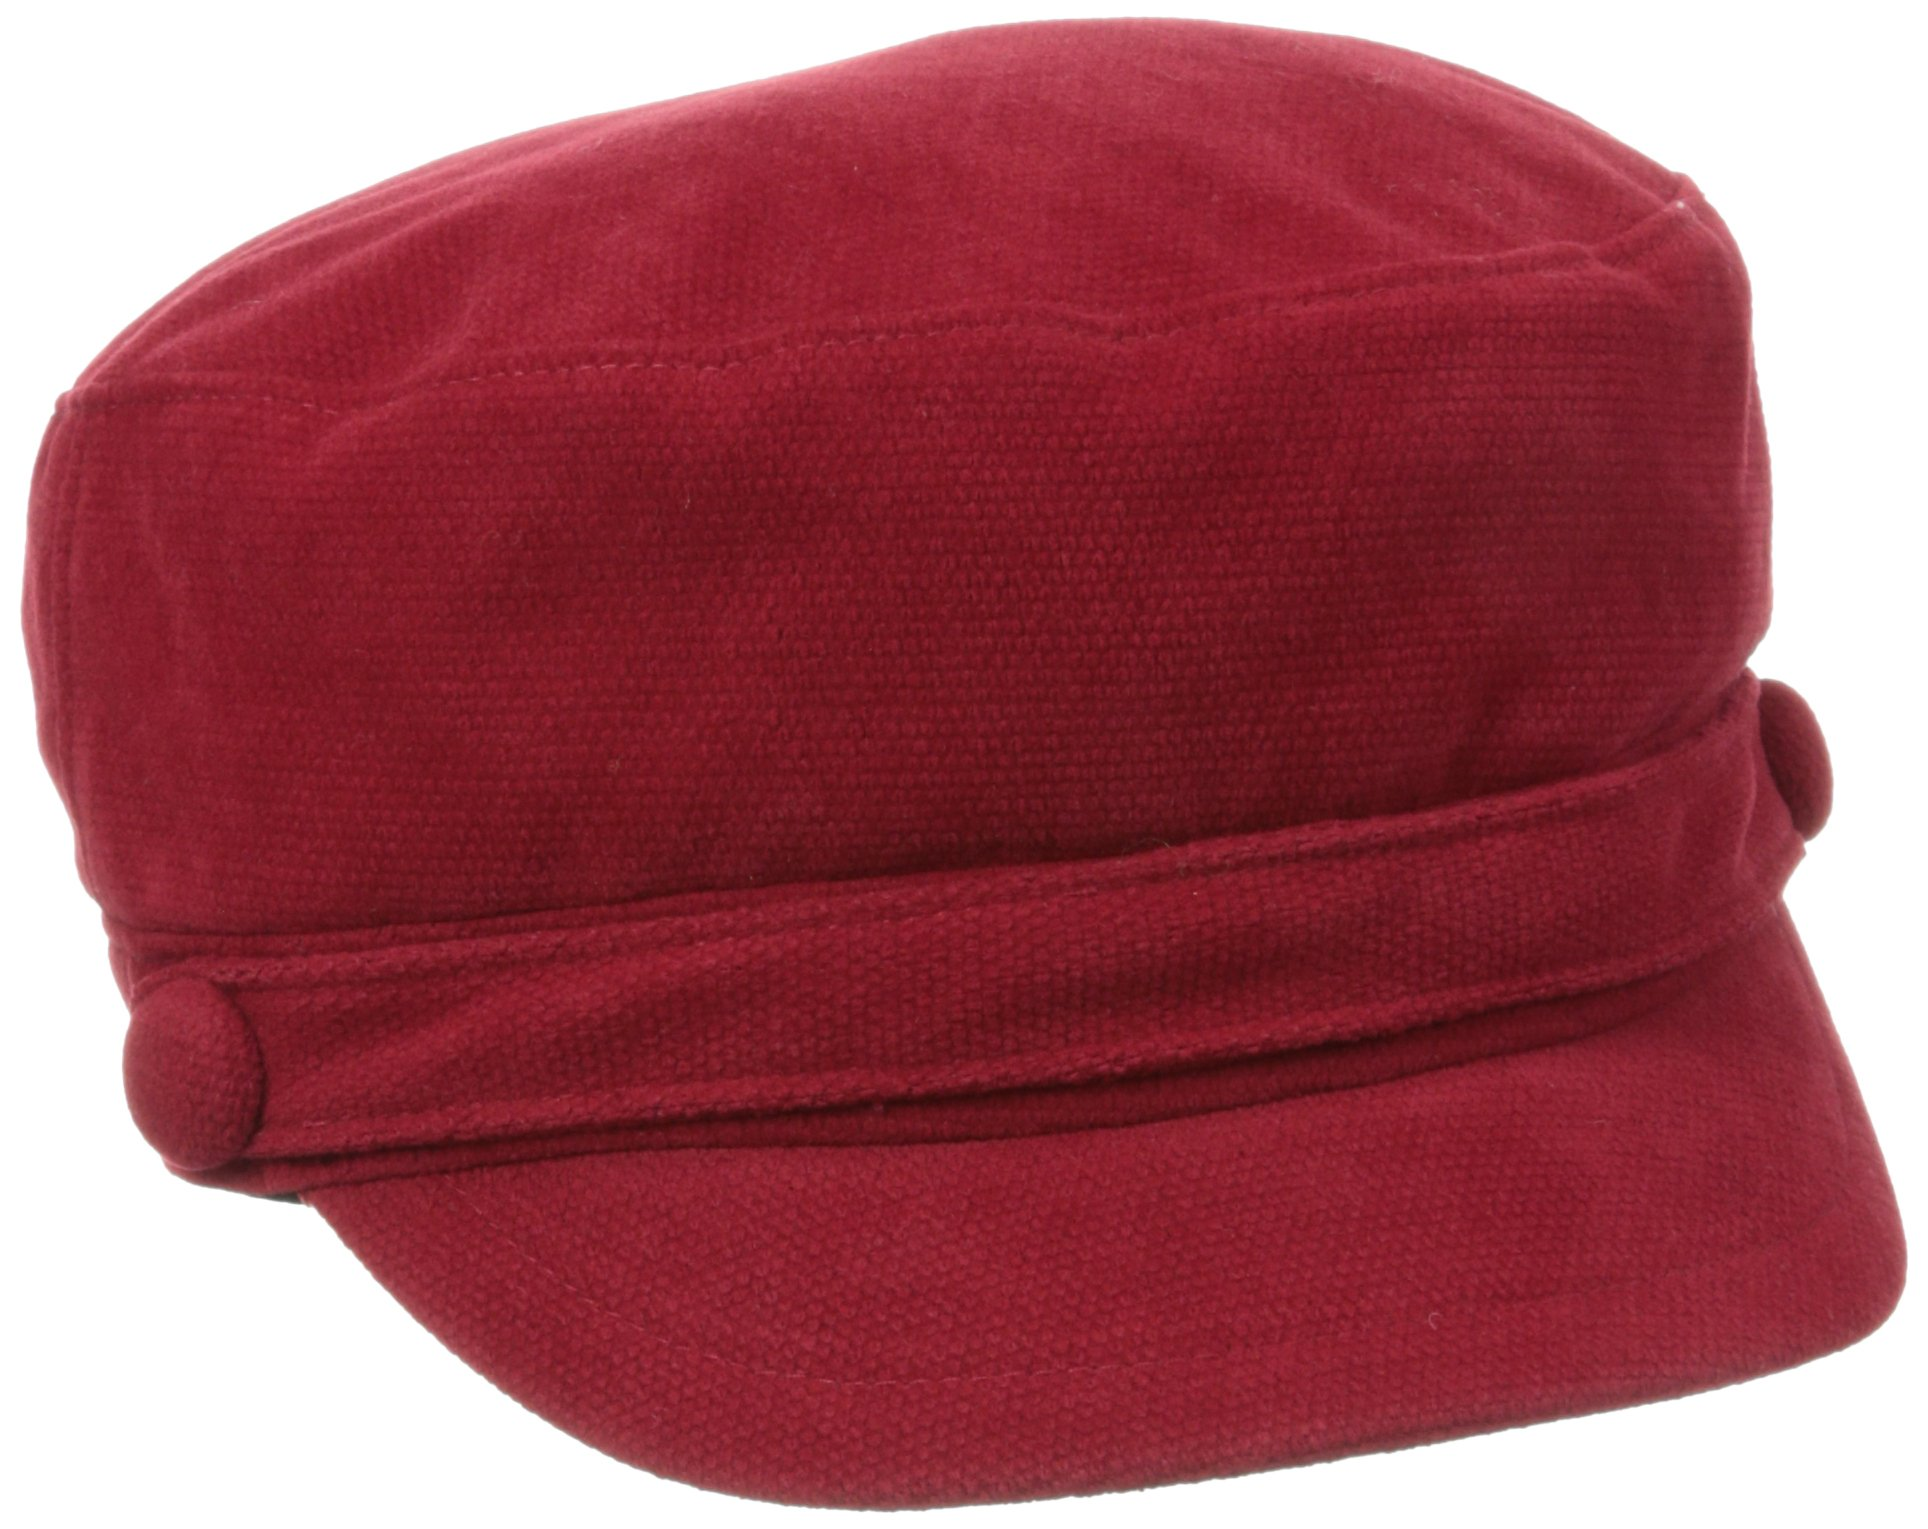 San Diego Hat Company Women's Sueded Corduroy Greek Fisherman Hat, Red, One Size